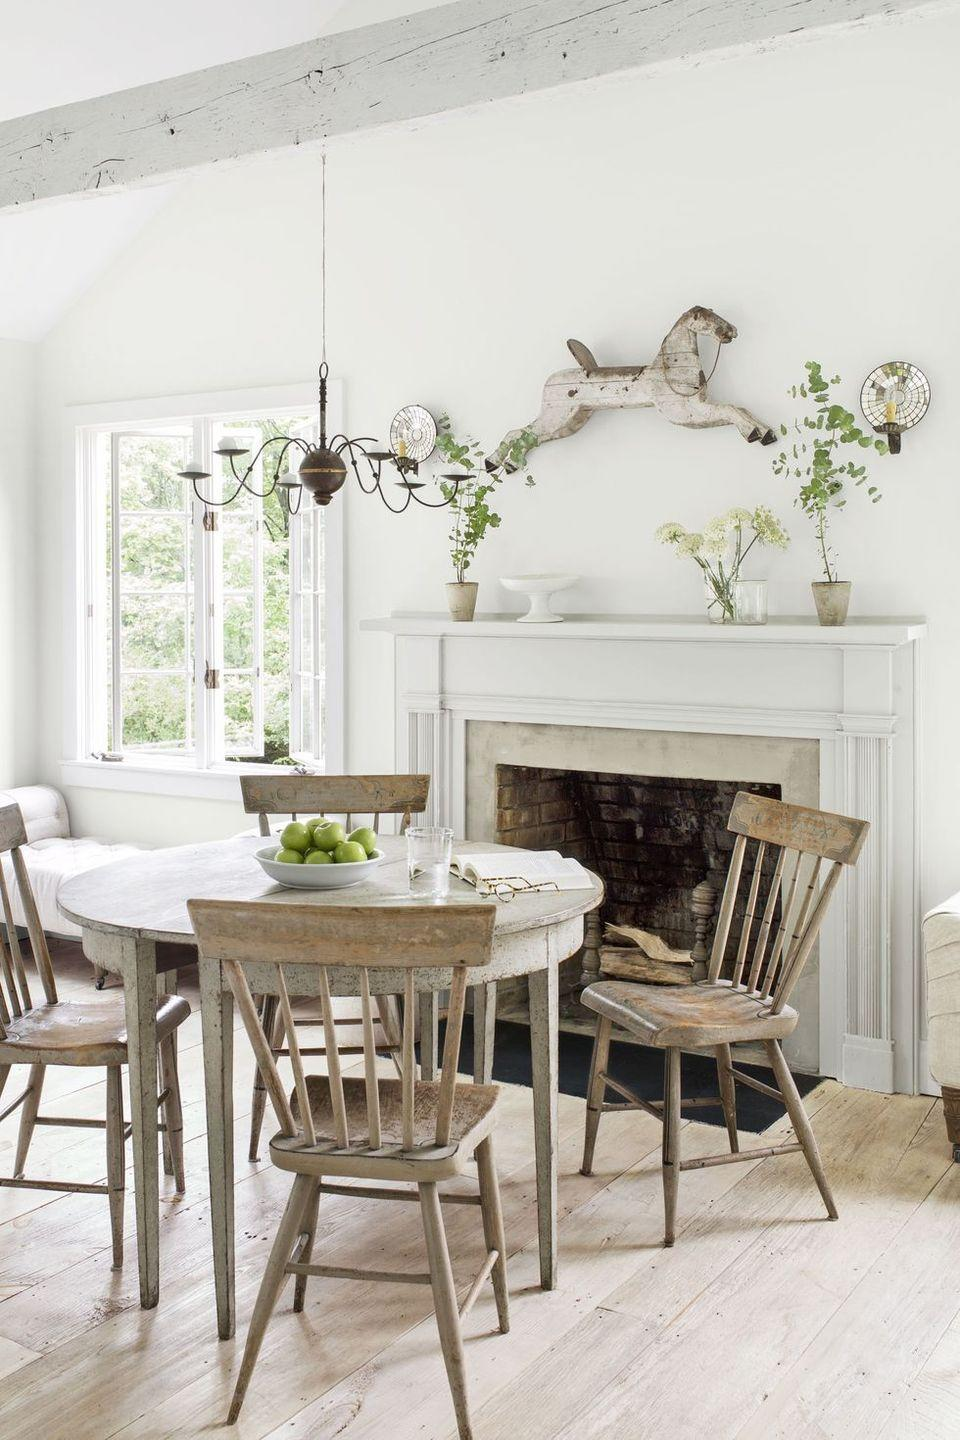 <p>Antiques with an old-world feel are always great for the fall season. Take a cue from this well-curated mantel, including a wall-mounted horse, and make a unique vintage find part of your decor. </p>